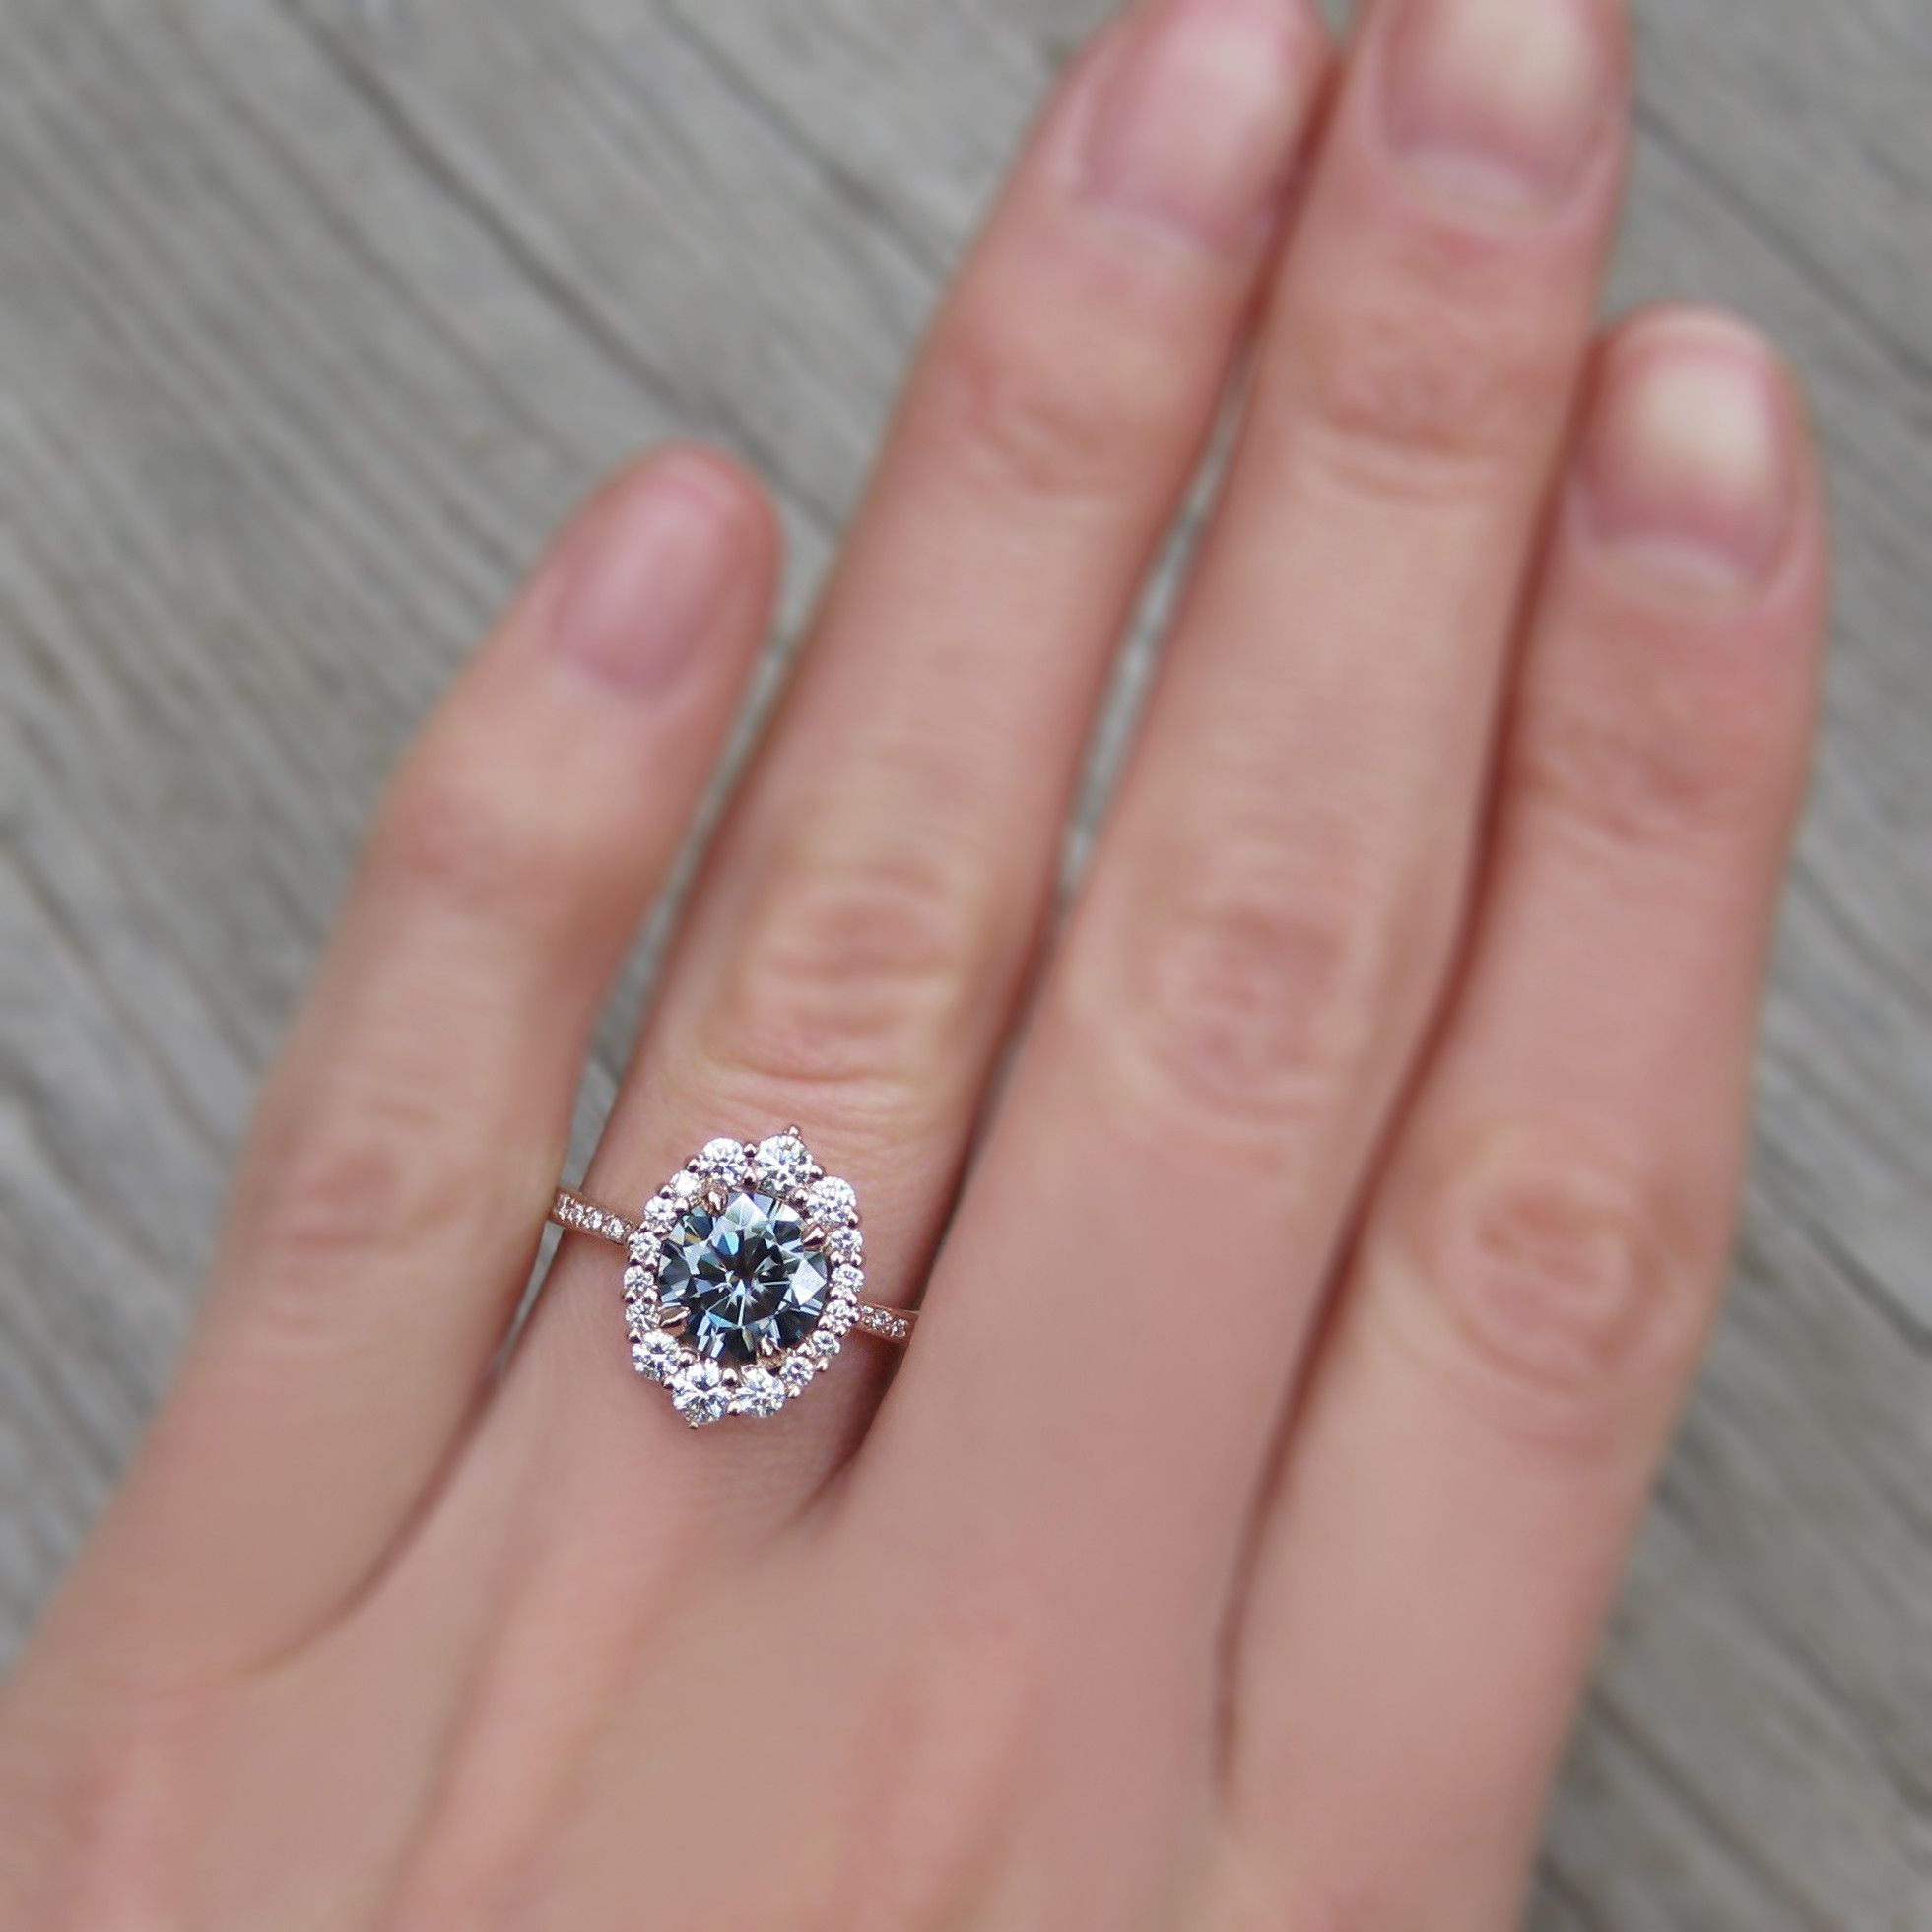 Dark Grey Moissanite Engagement Ring with Diamond Halo + Pavé Band ...